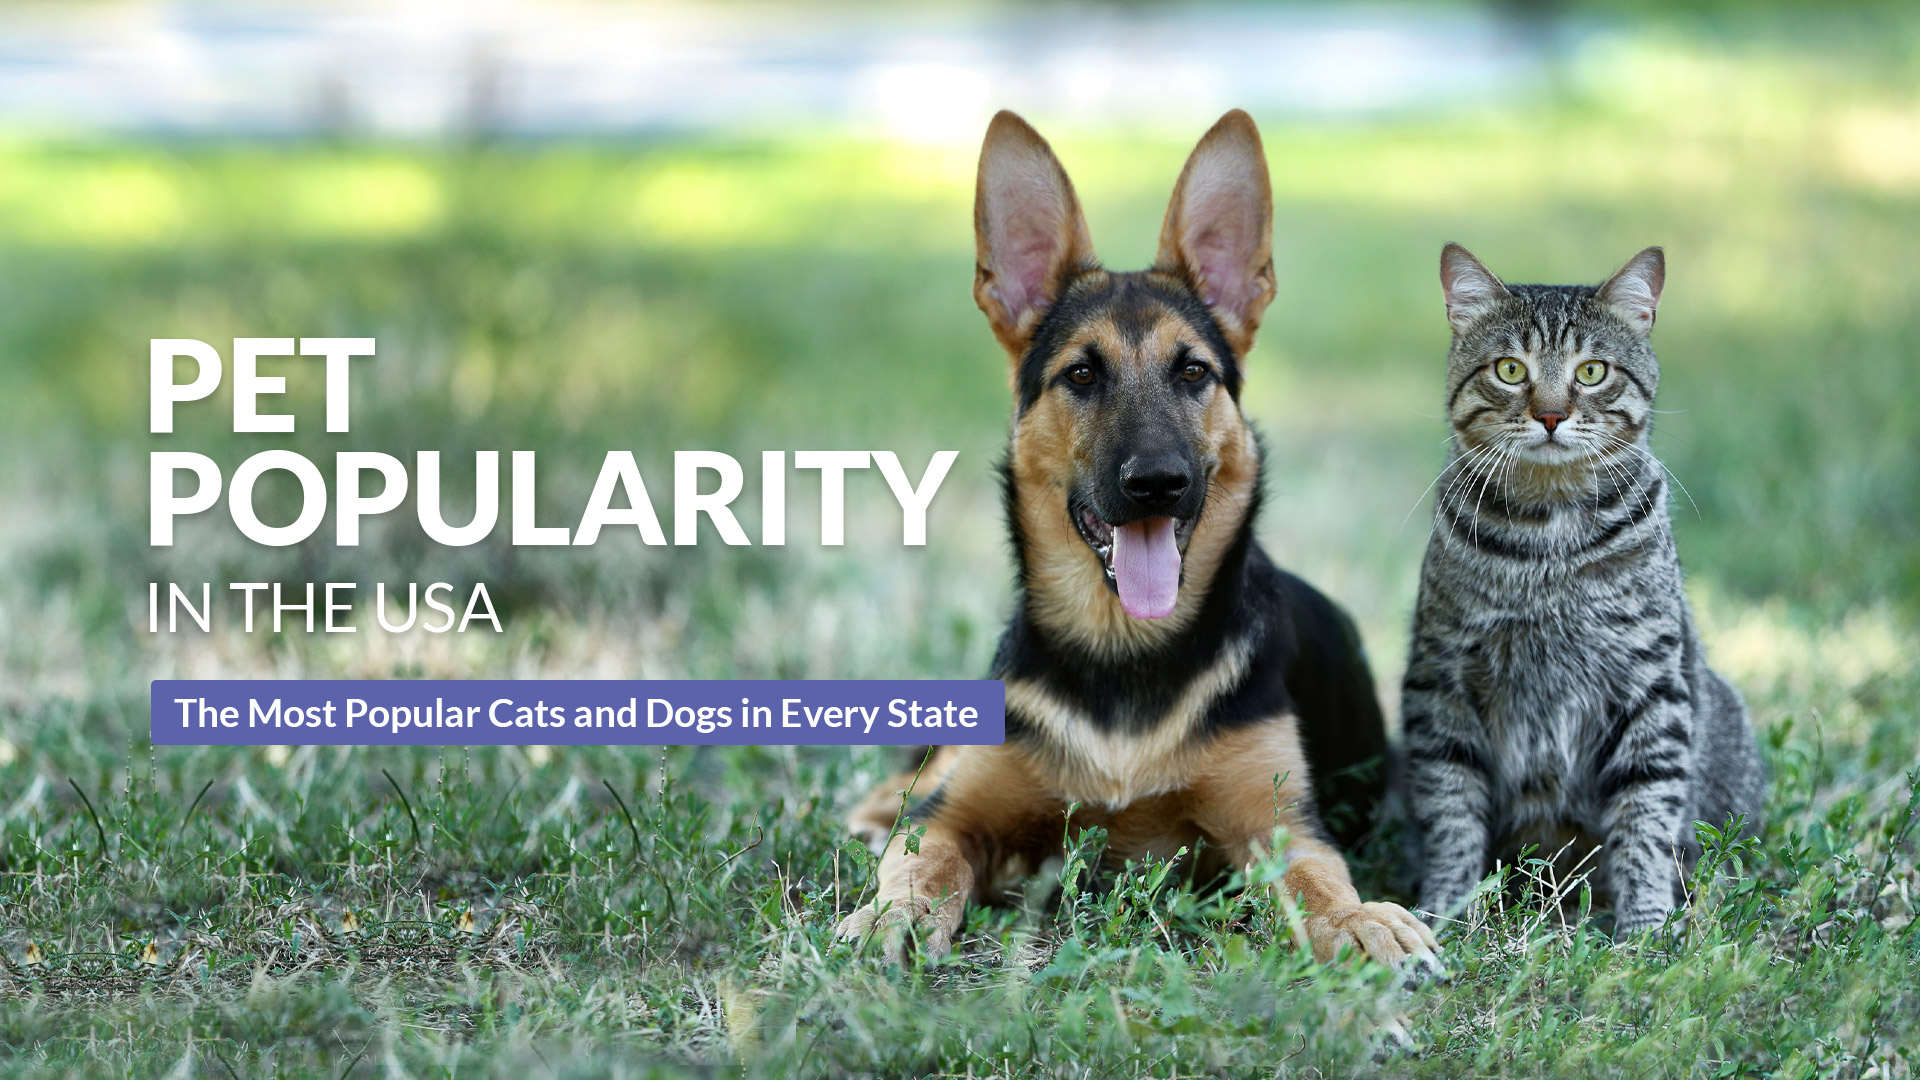 Pet Popularity in the USA